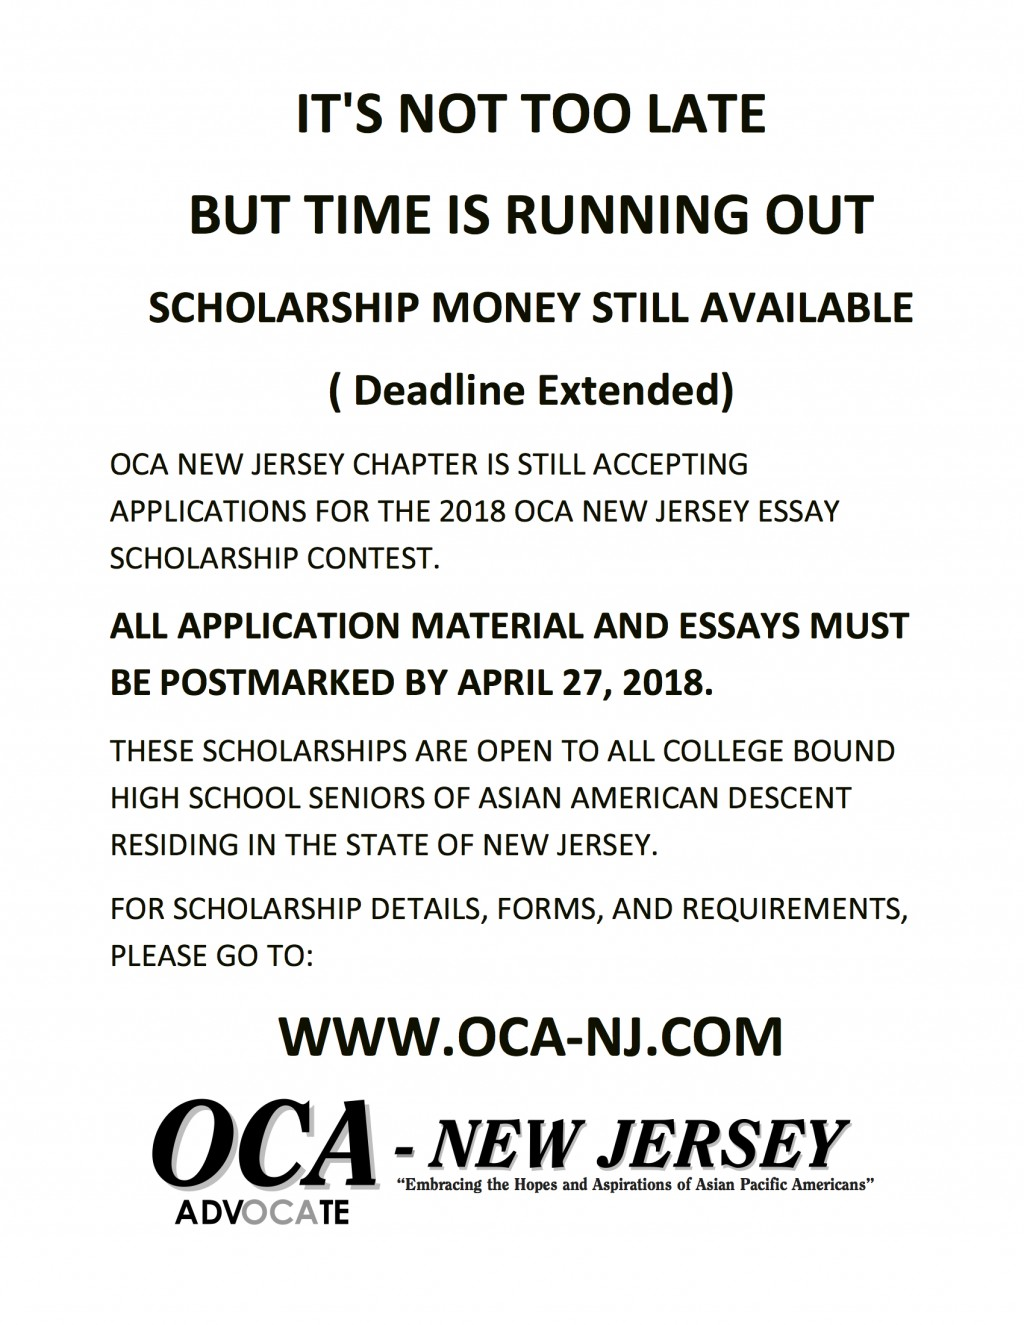 014 Essay Example Scholarships Entended Deadline Oca Nj Shocking For High School Students 2018 2019 Large